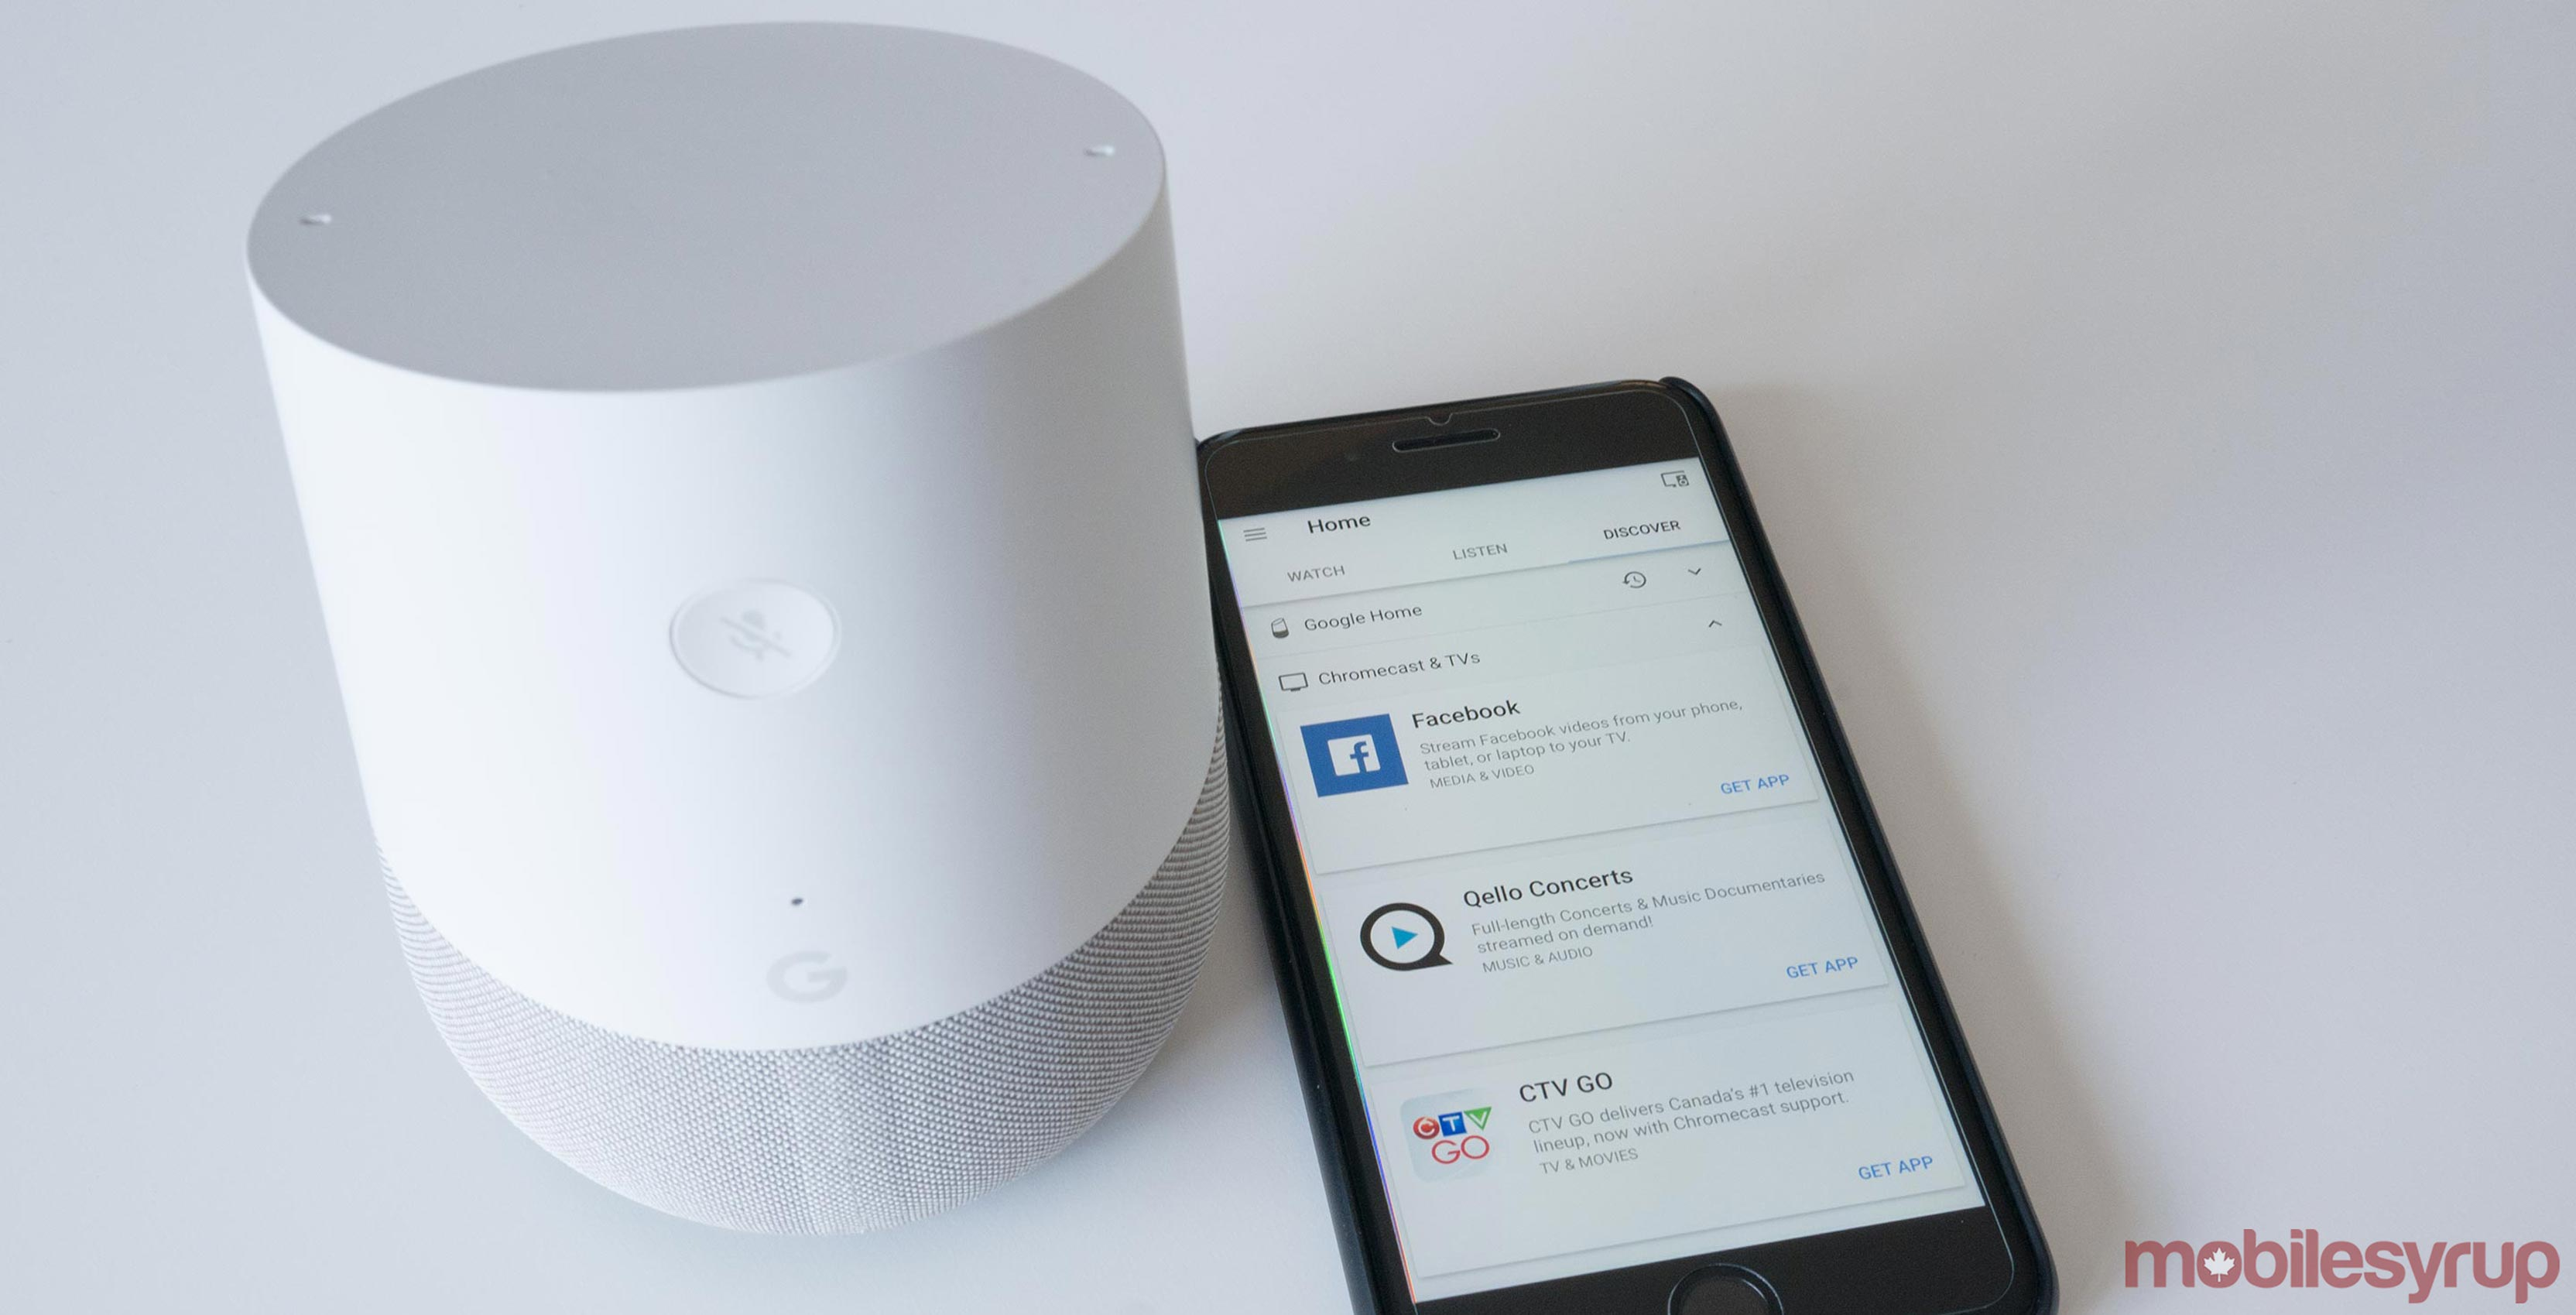 Teardown reveals possible 'Quartz' Google Home device with display